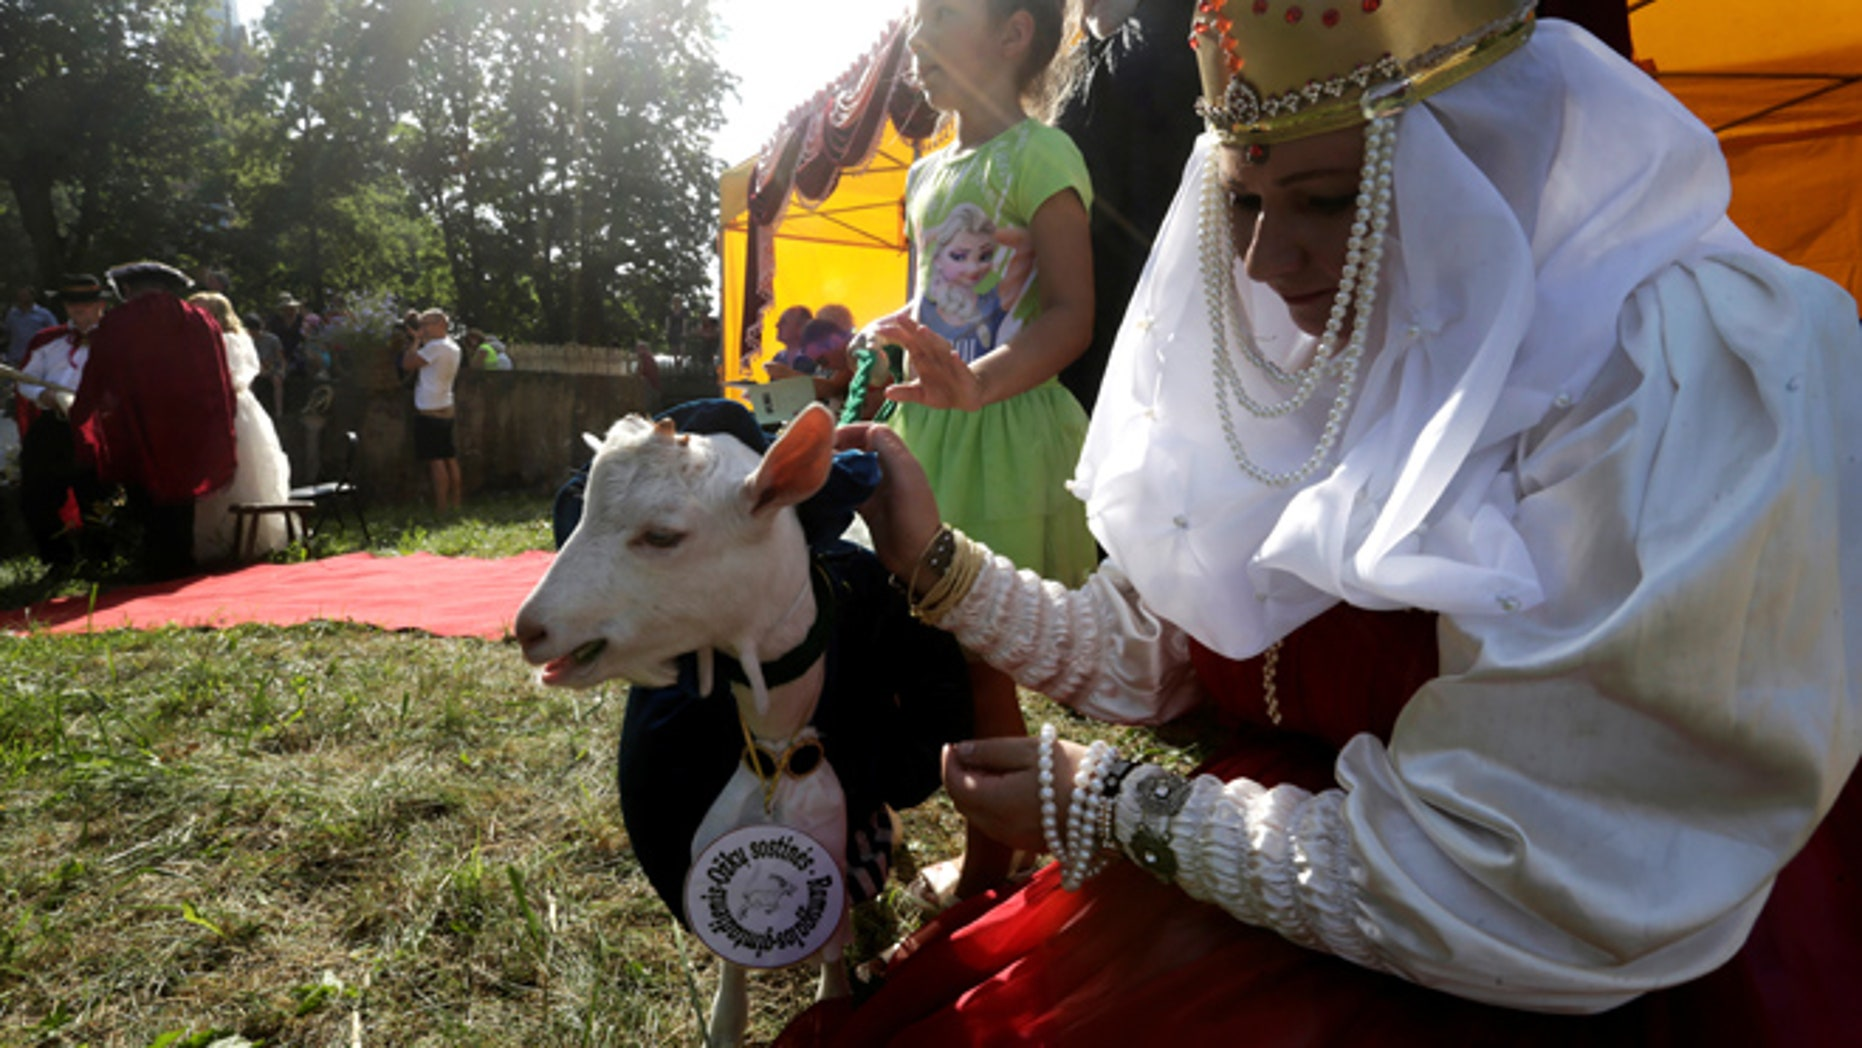 A woman in medieval attire comforts a goat during the goat beauty pageant in Ramygala, Lithuania, June 26, 2016.